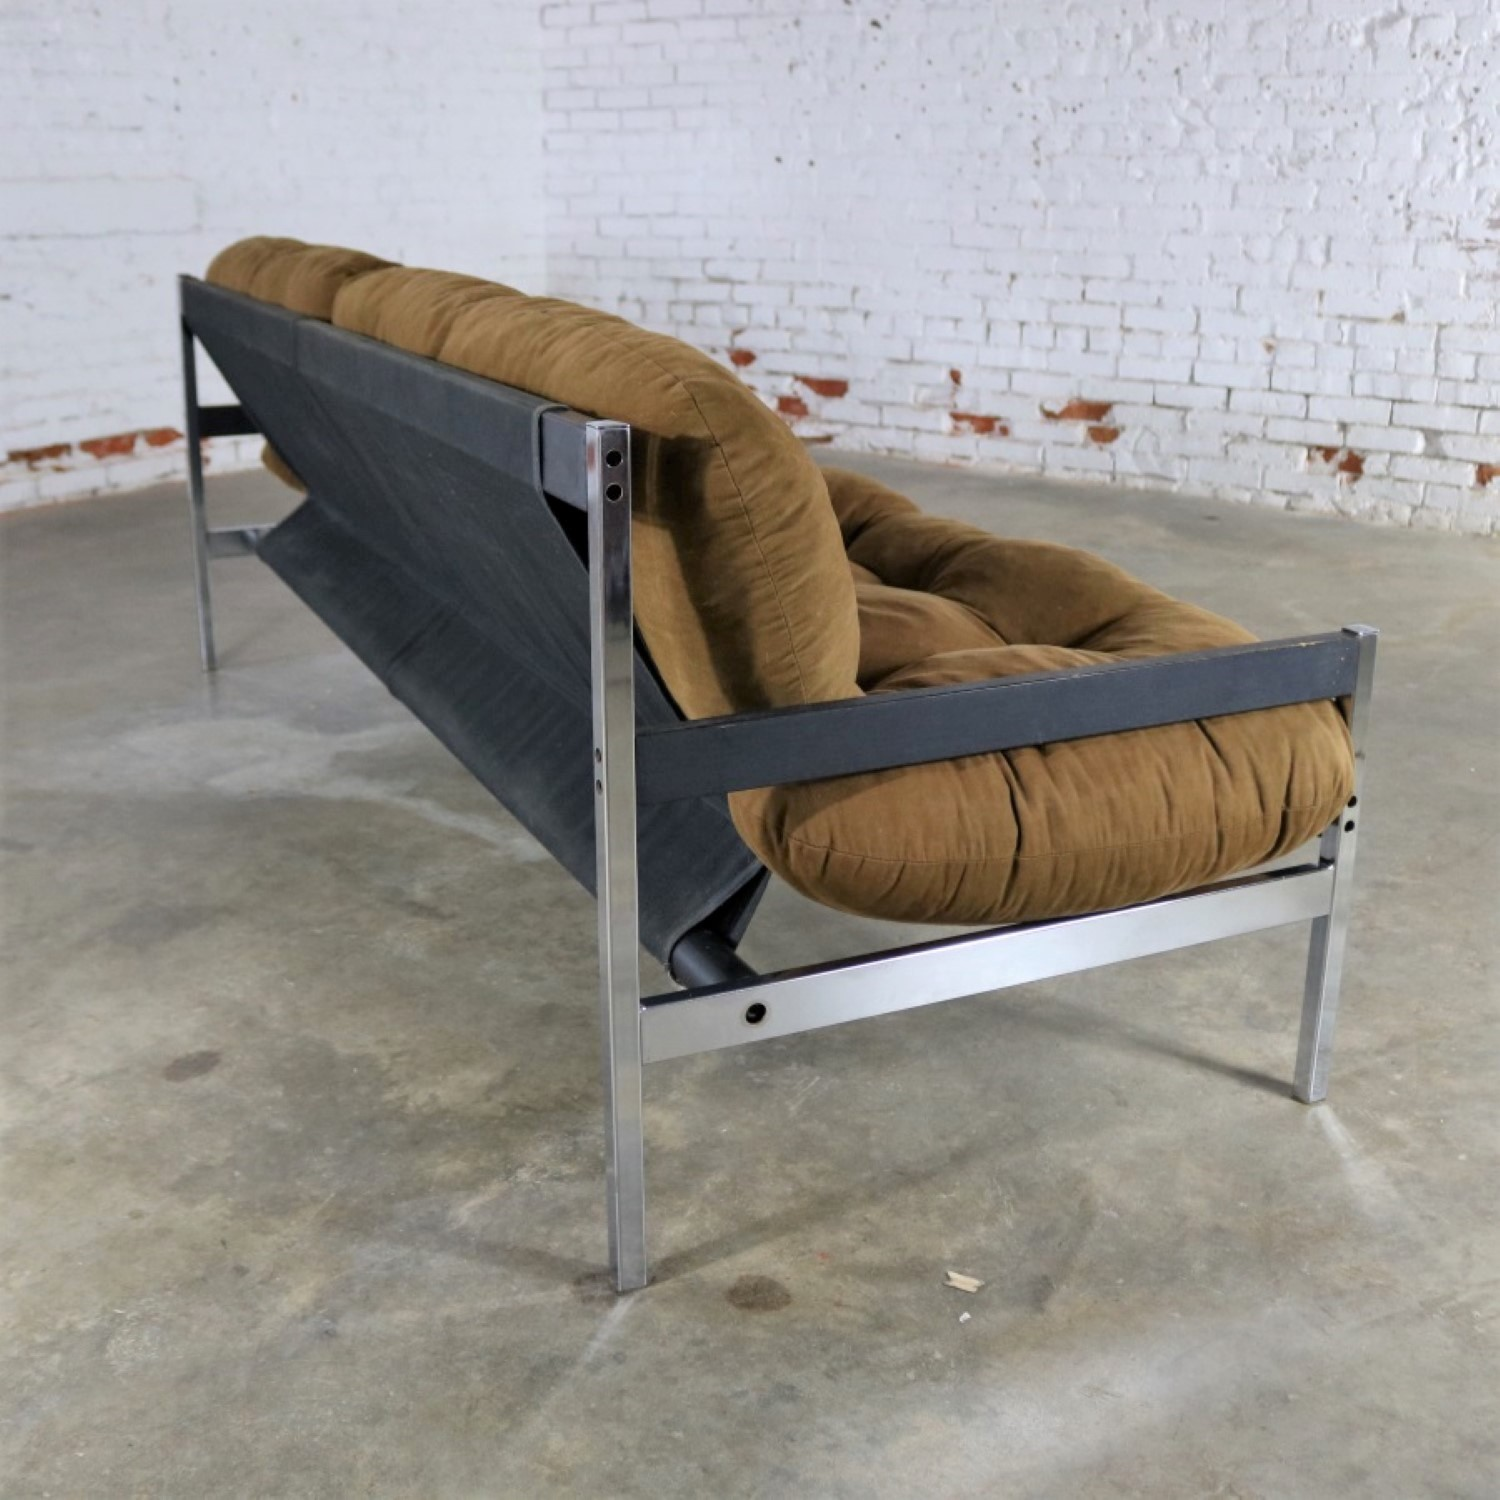 Landes Manufacturing Sling Sofa From The Encino Collection